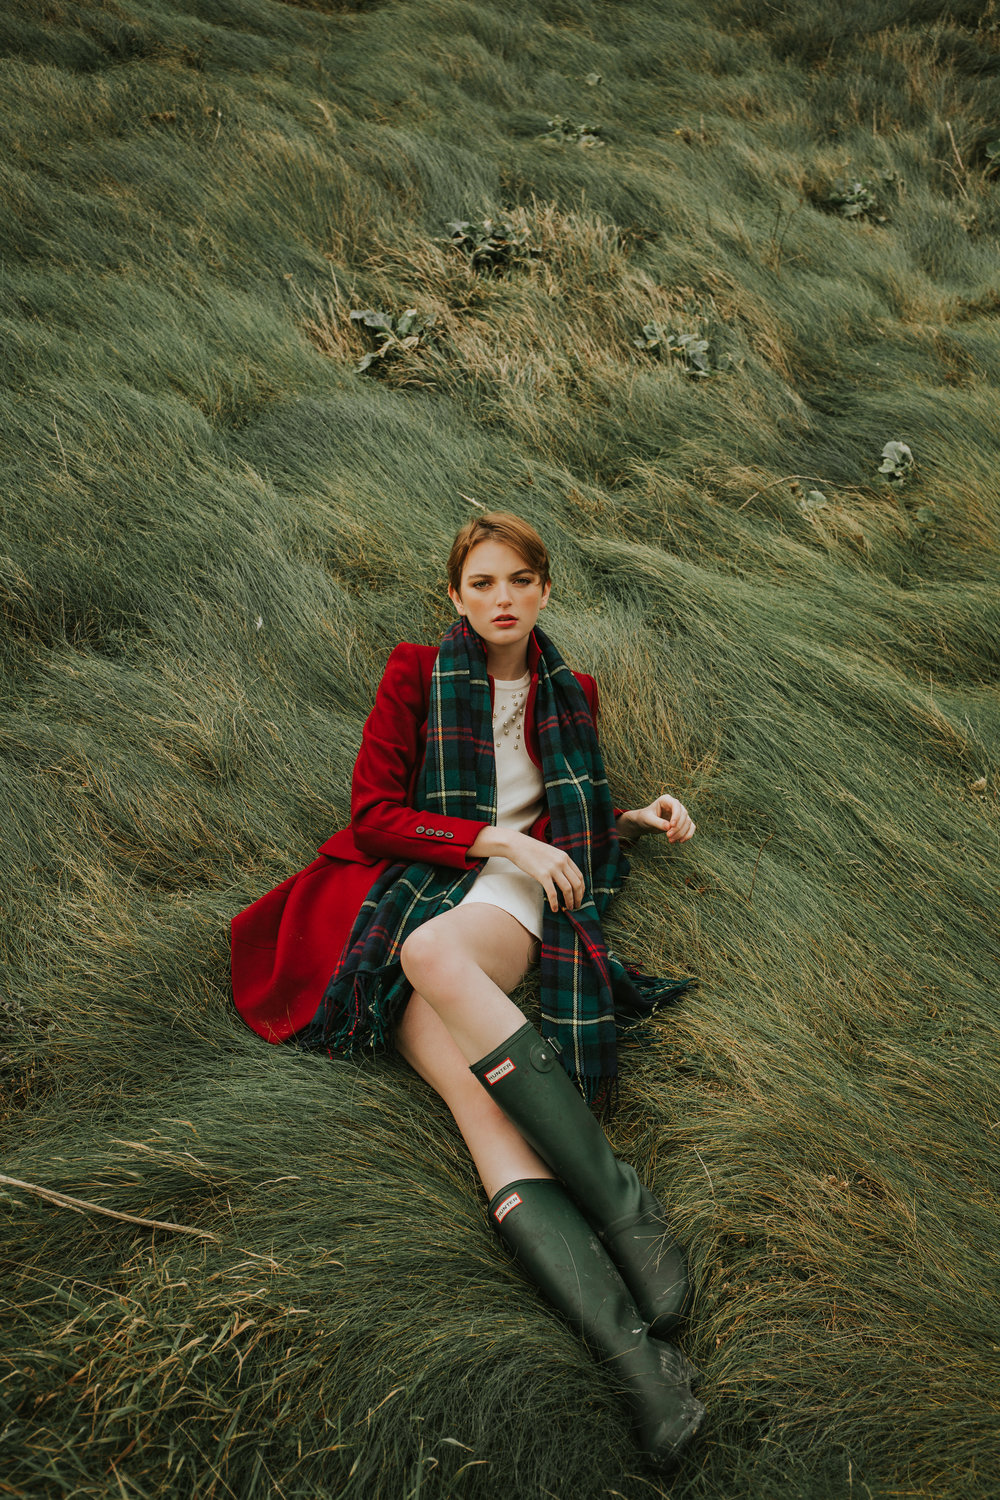 HighlandHers Editorial_2017_09_16_052826-4816_CMB.jpg